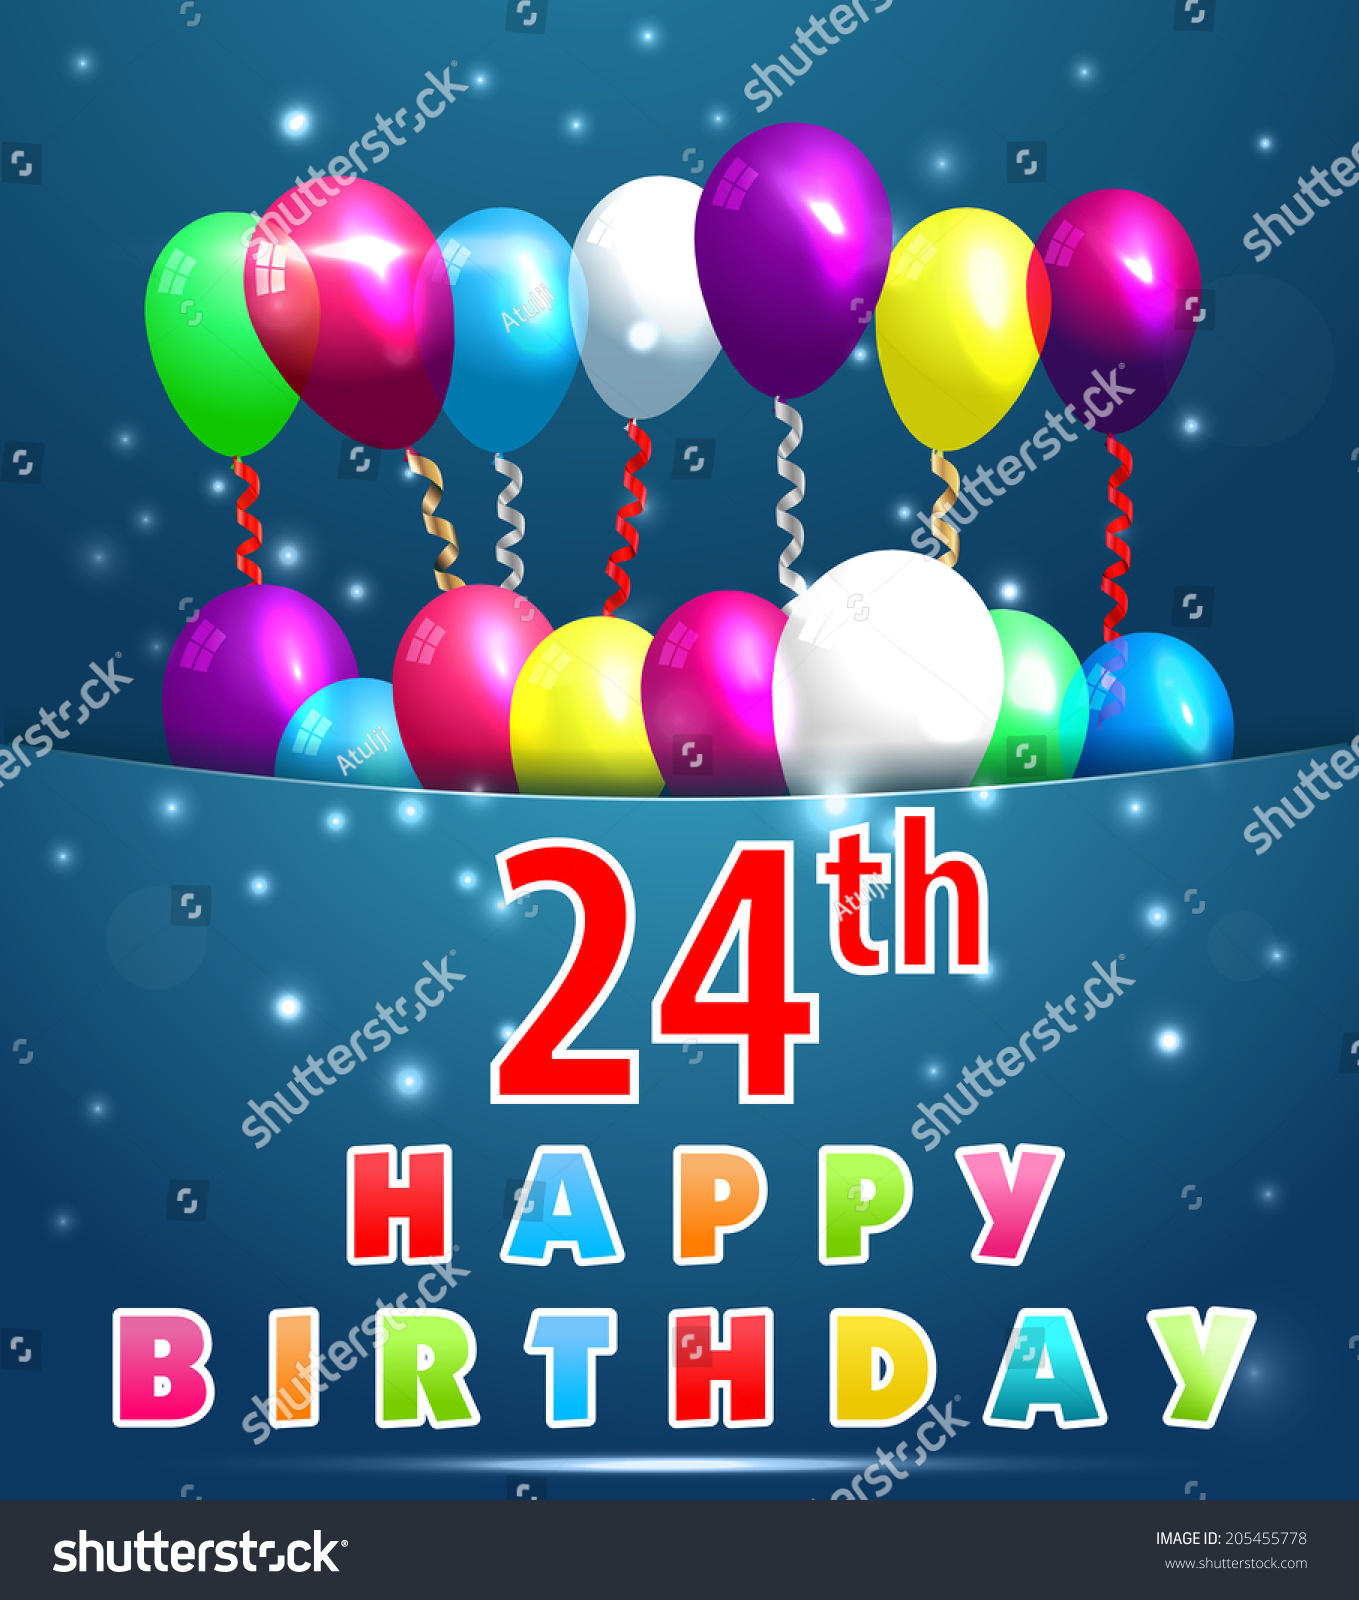 24 Year Happy Birthday Card Balloons Stock Vector Royalty Free 205455778